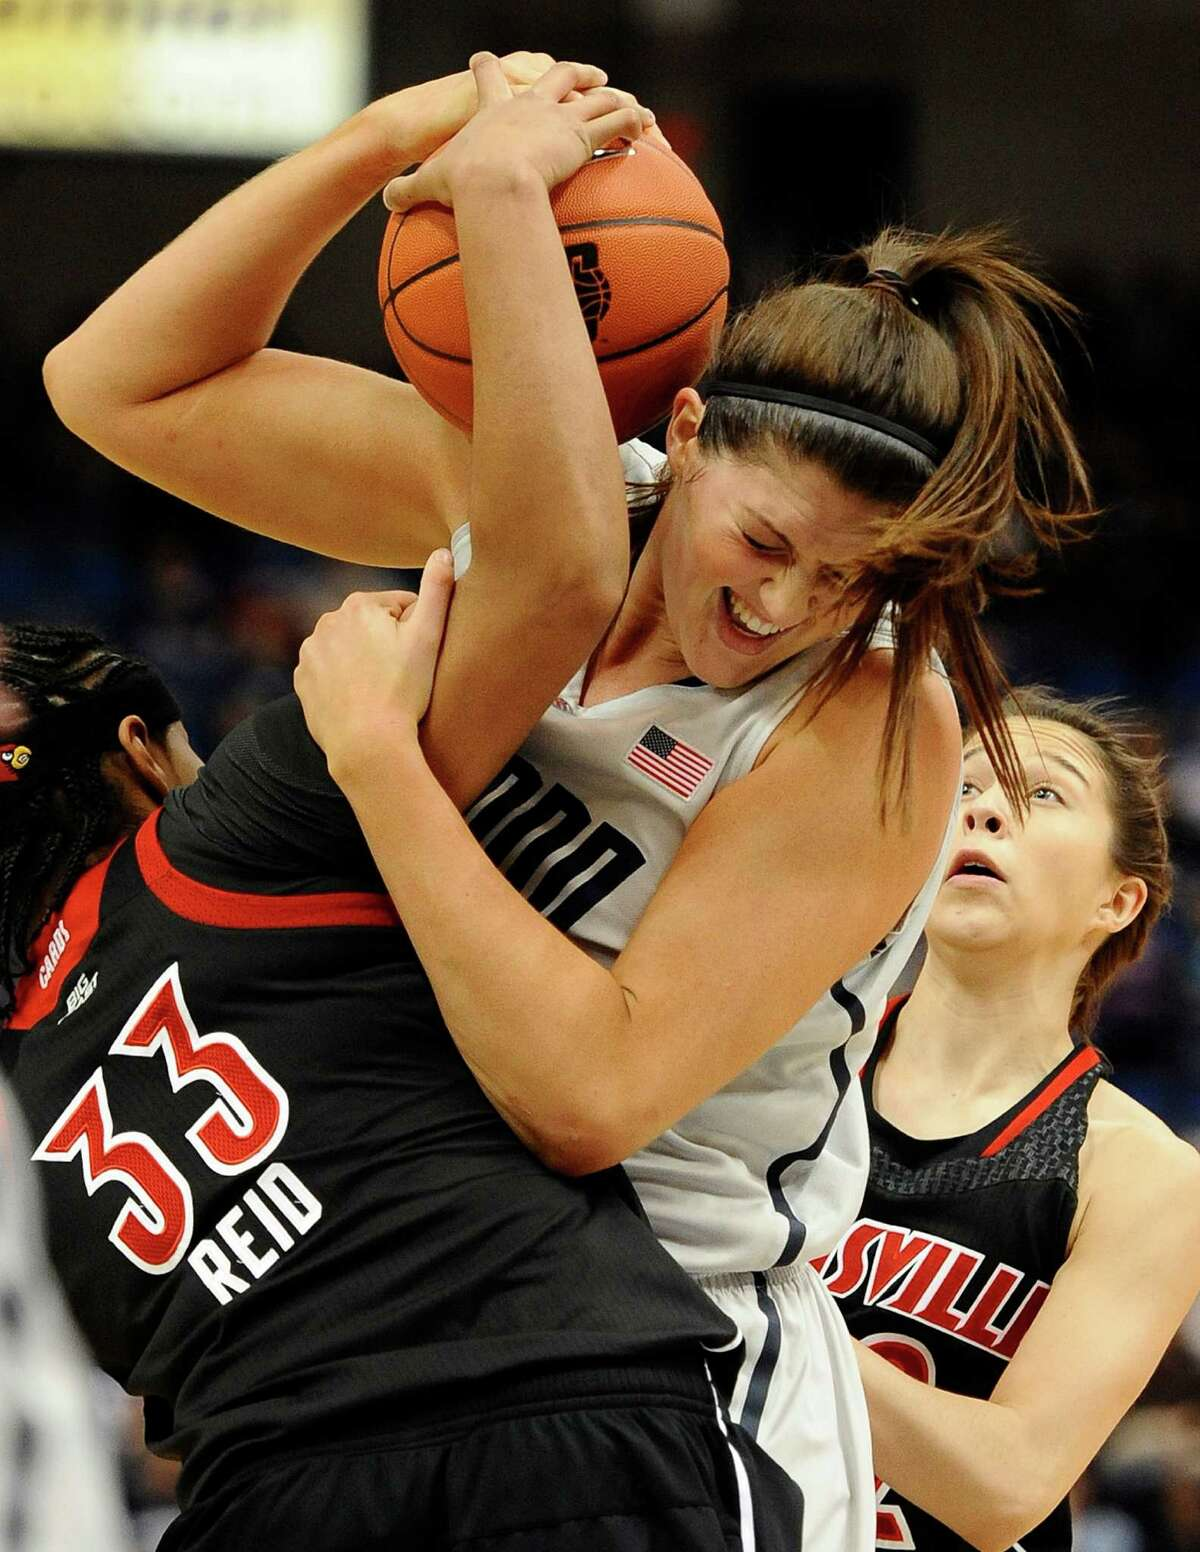 Connecticut's Stefanie Dolson, center battles for control of the ball against Louisville's Monique Reid, left and Louisville's Jude Schimmel, right, during the first half of an NCAA college basketball game in Hartford, Conn., Tuesday, Jan. 15, 2013. (AP Photo/Jessica Hill)